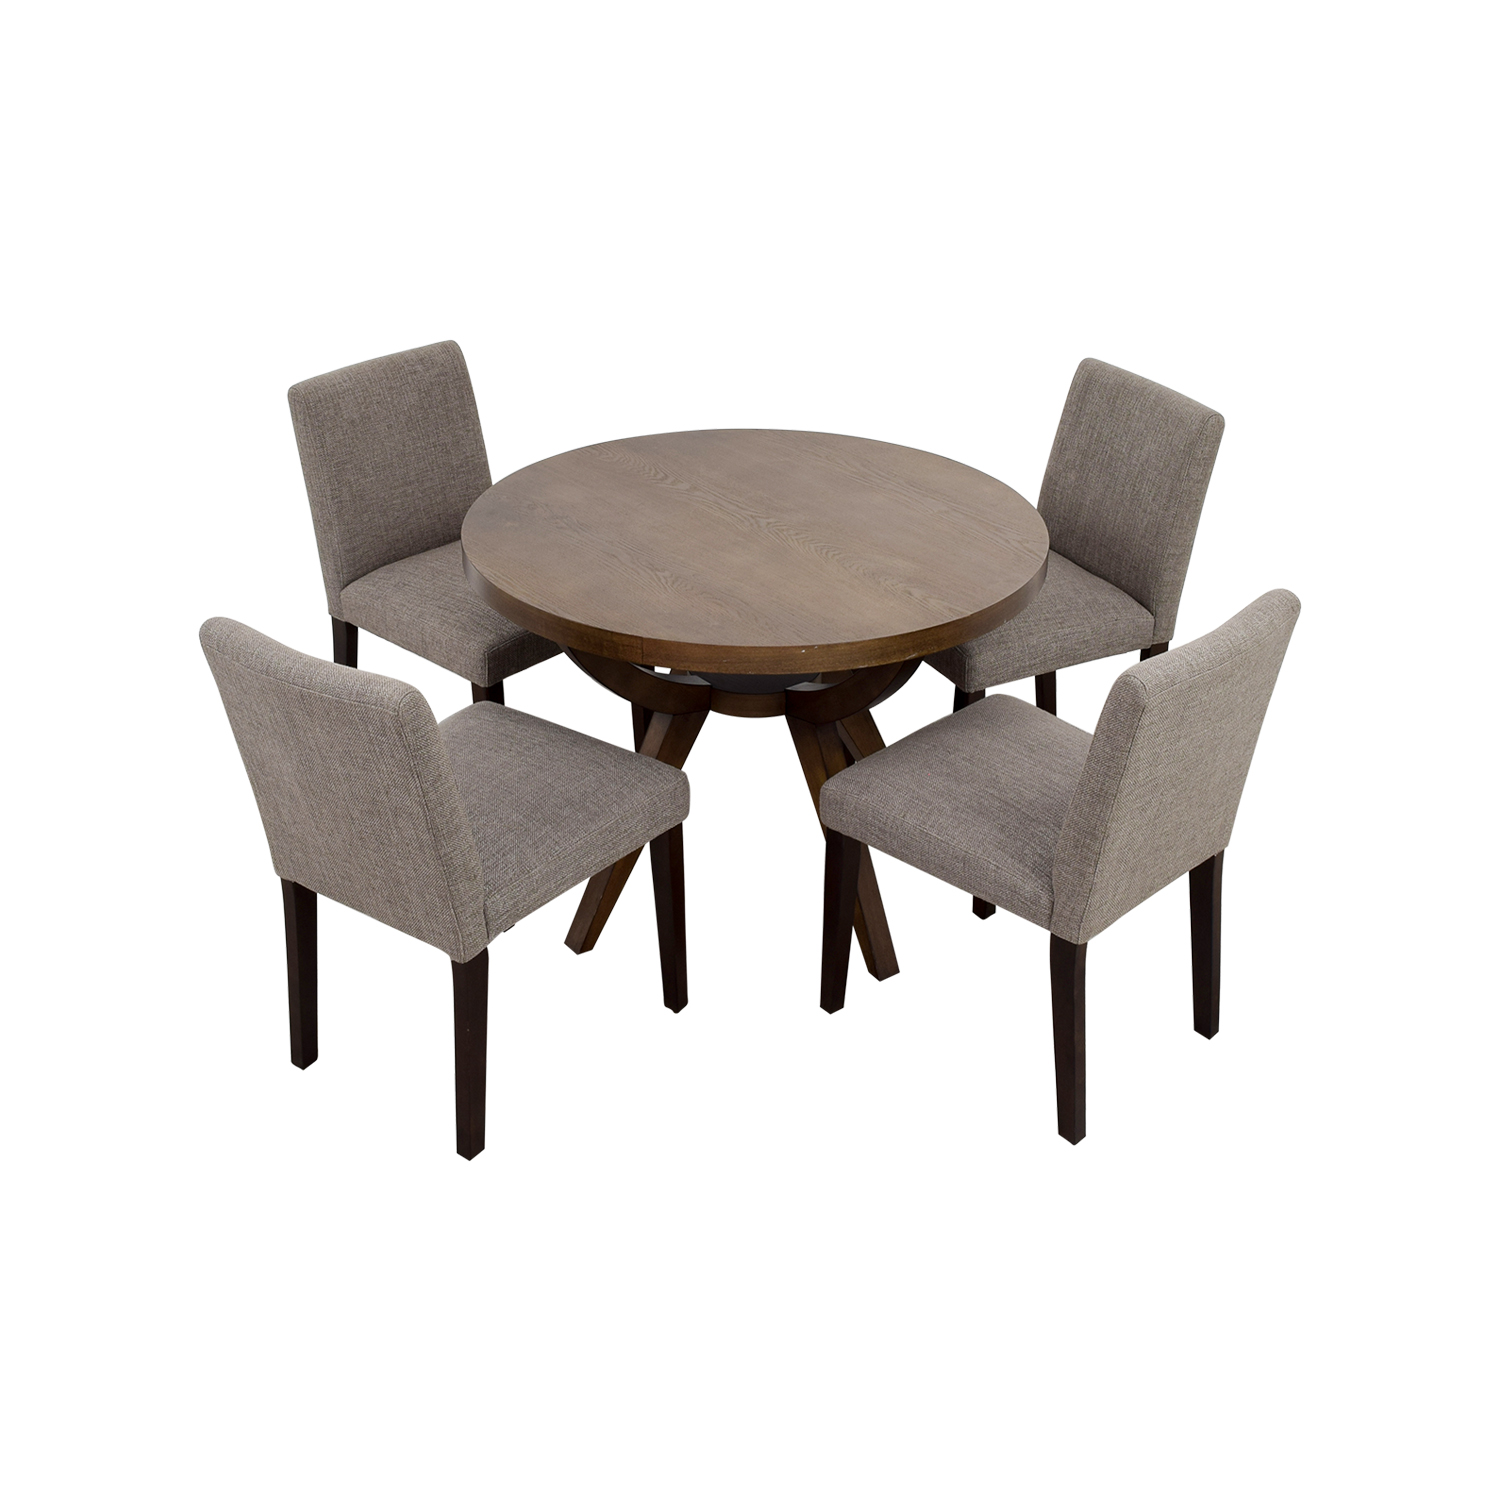 West Elm West Elm Arc Base Pedestal Table and Chairs price